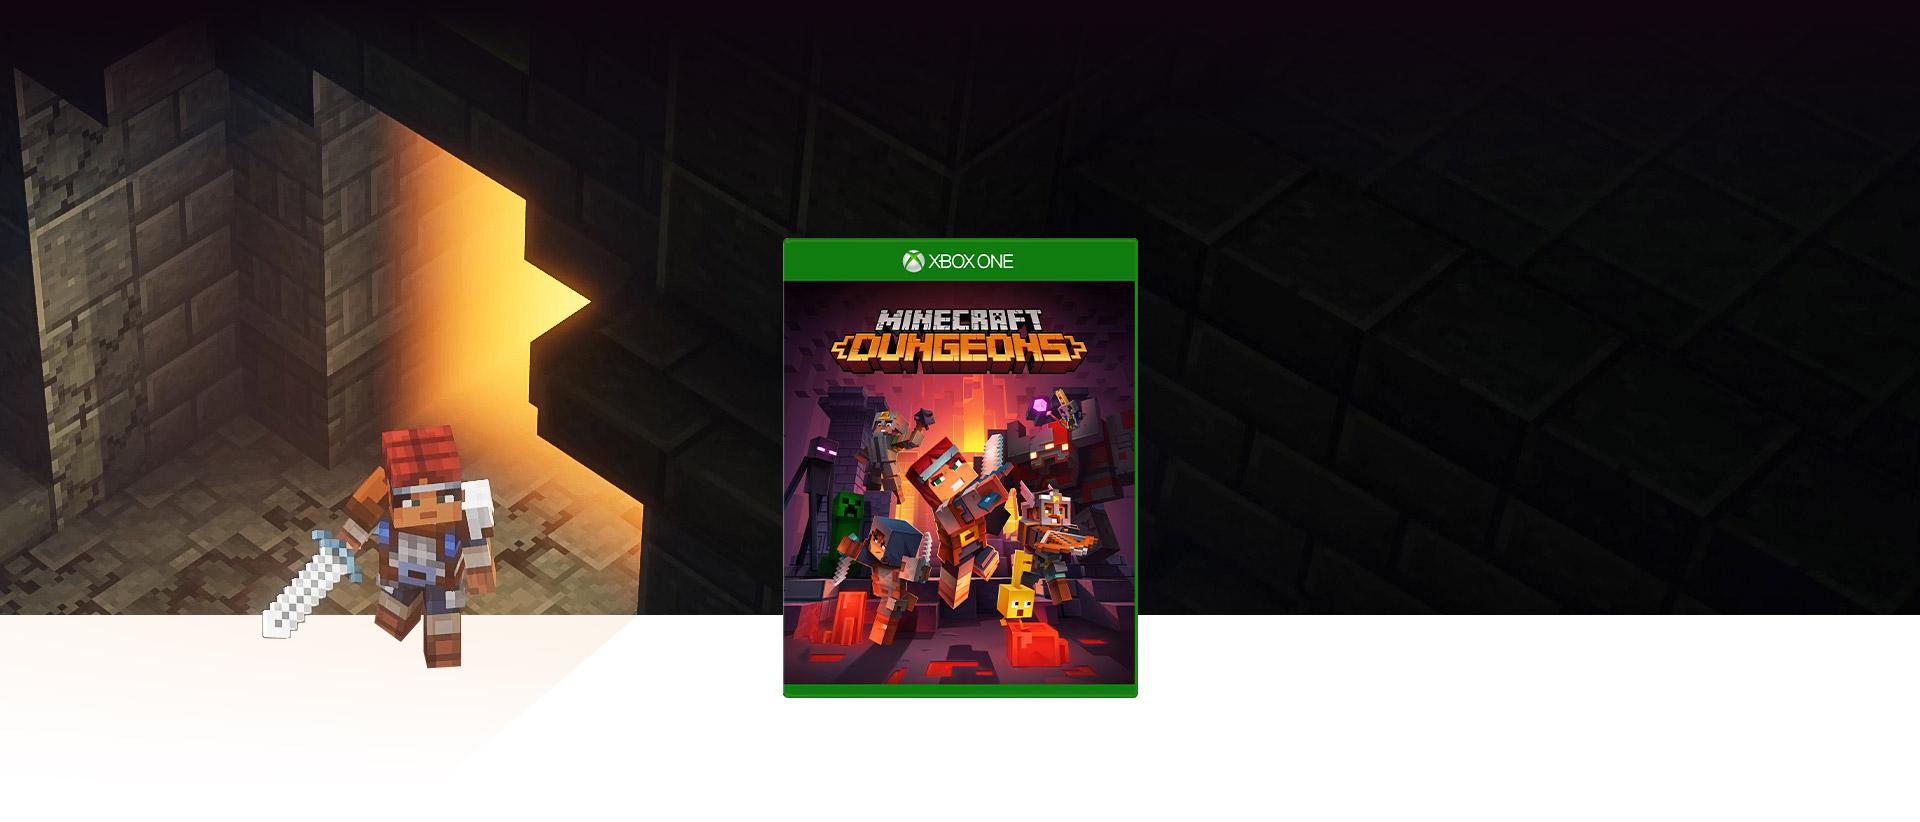 Minecraft Dungeons box image with the main character exiting a dungeon in the background